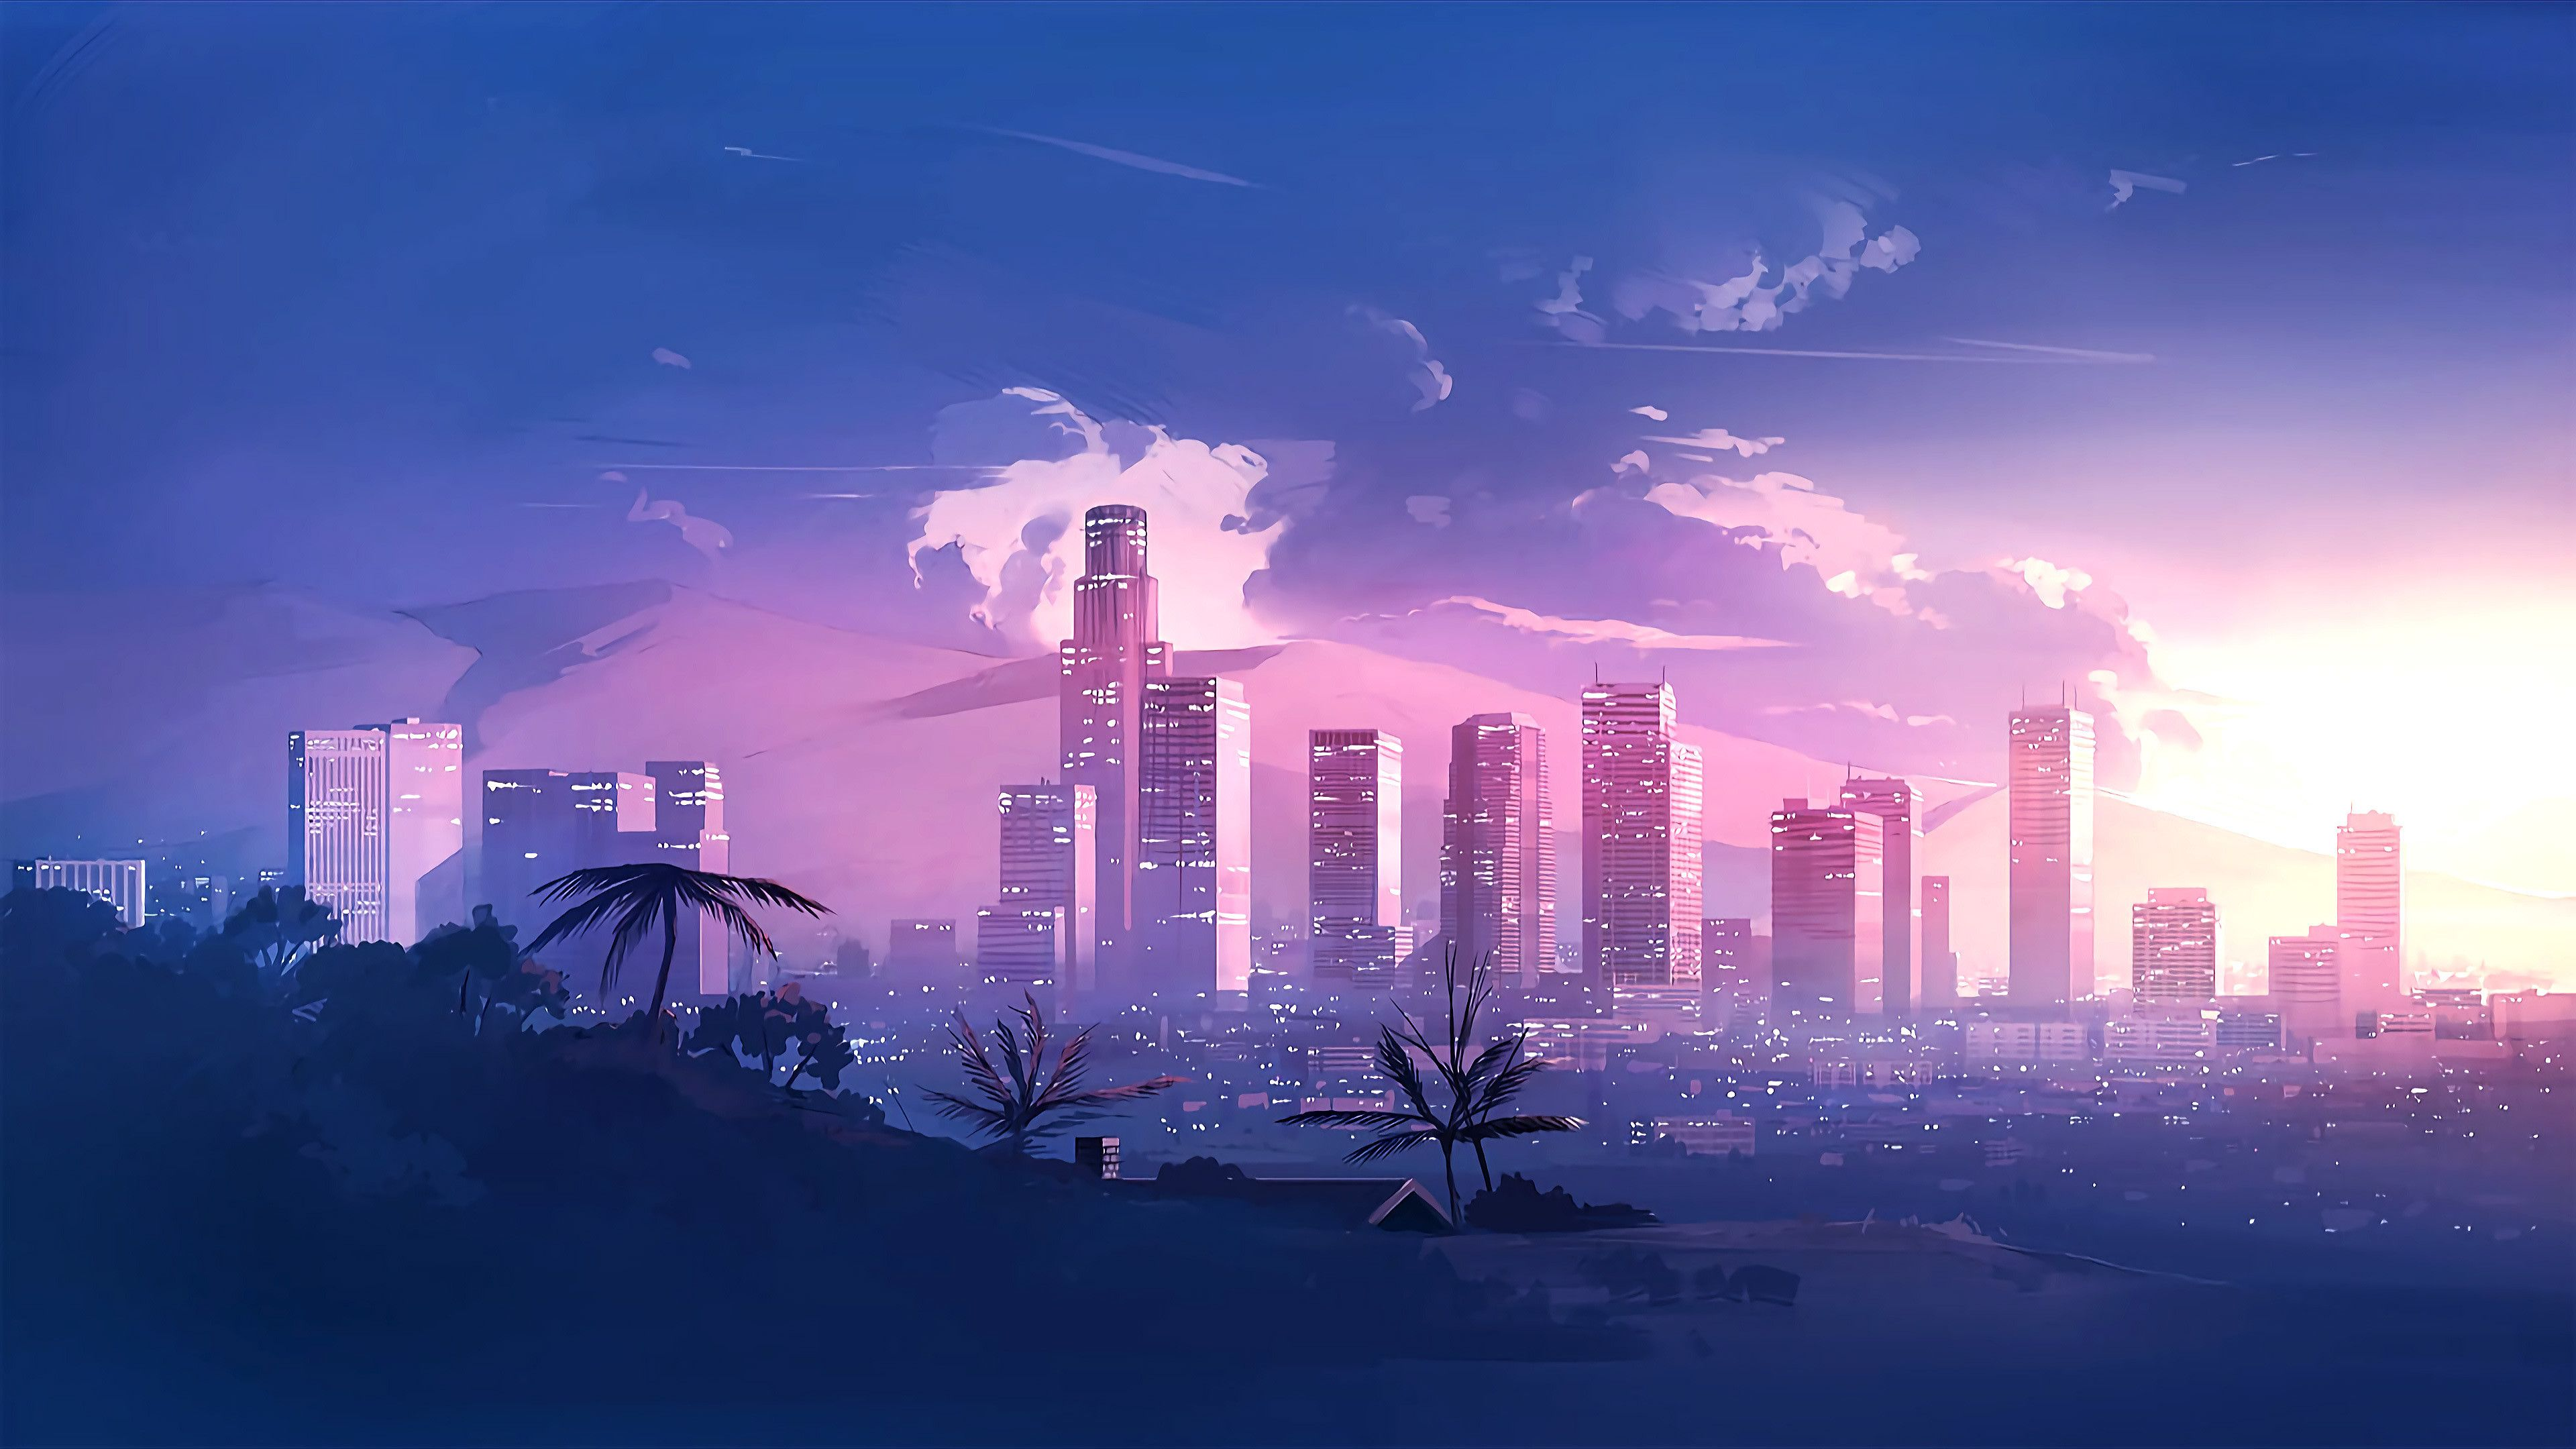 Los Angles City Minimalism Art 4k In 2020 Anime Scenery Wallpaper City Wallpaper Anime Scenery